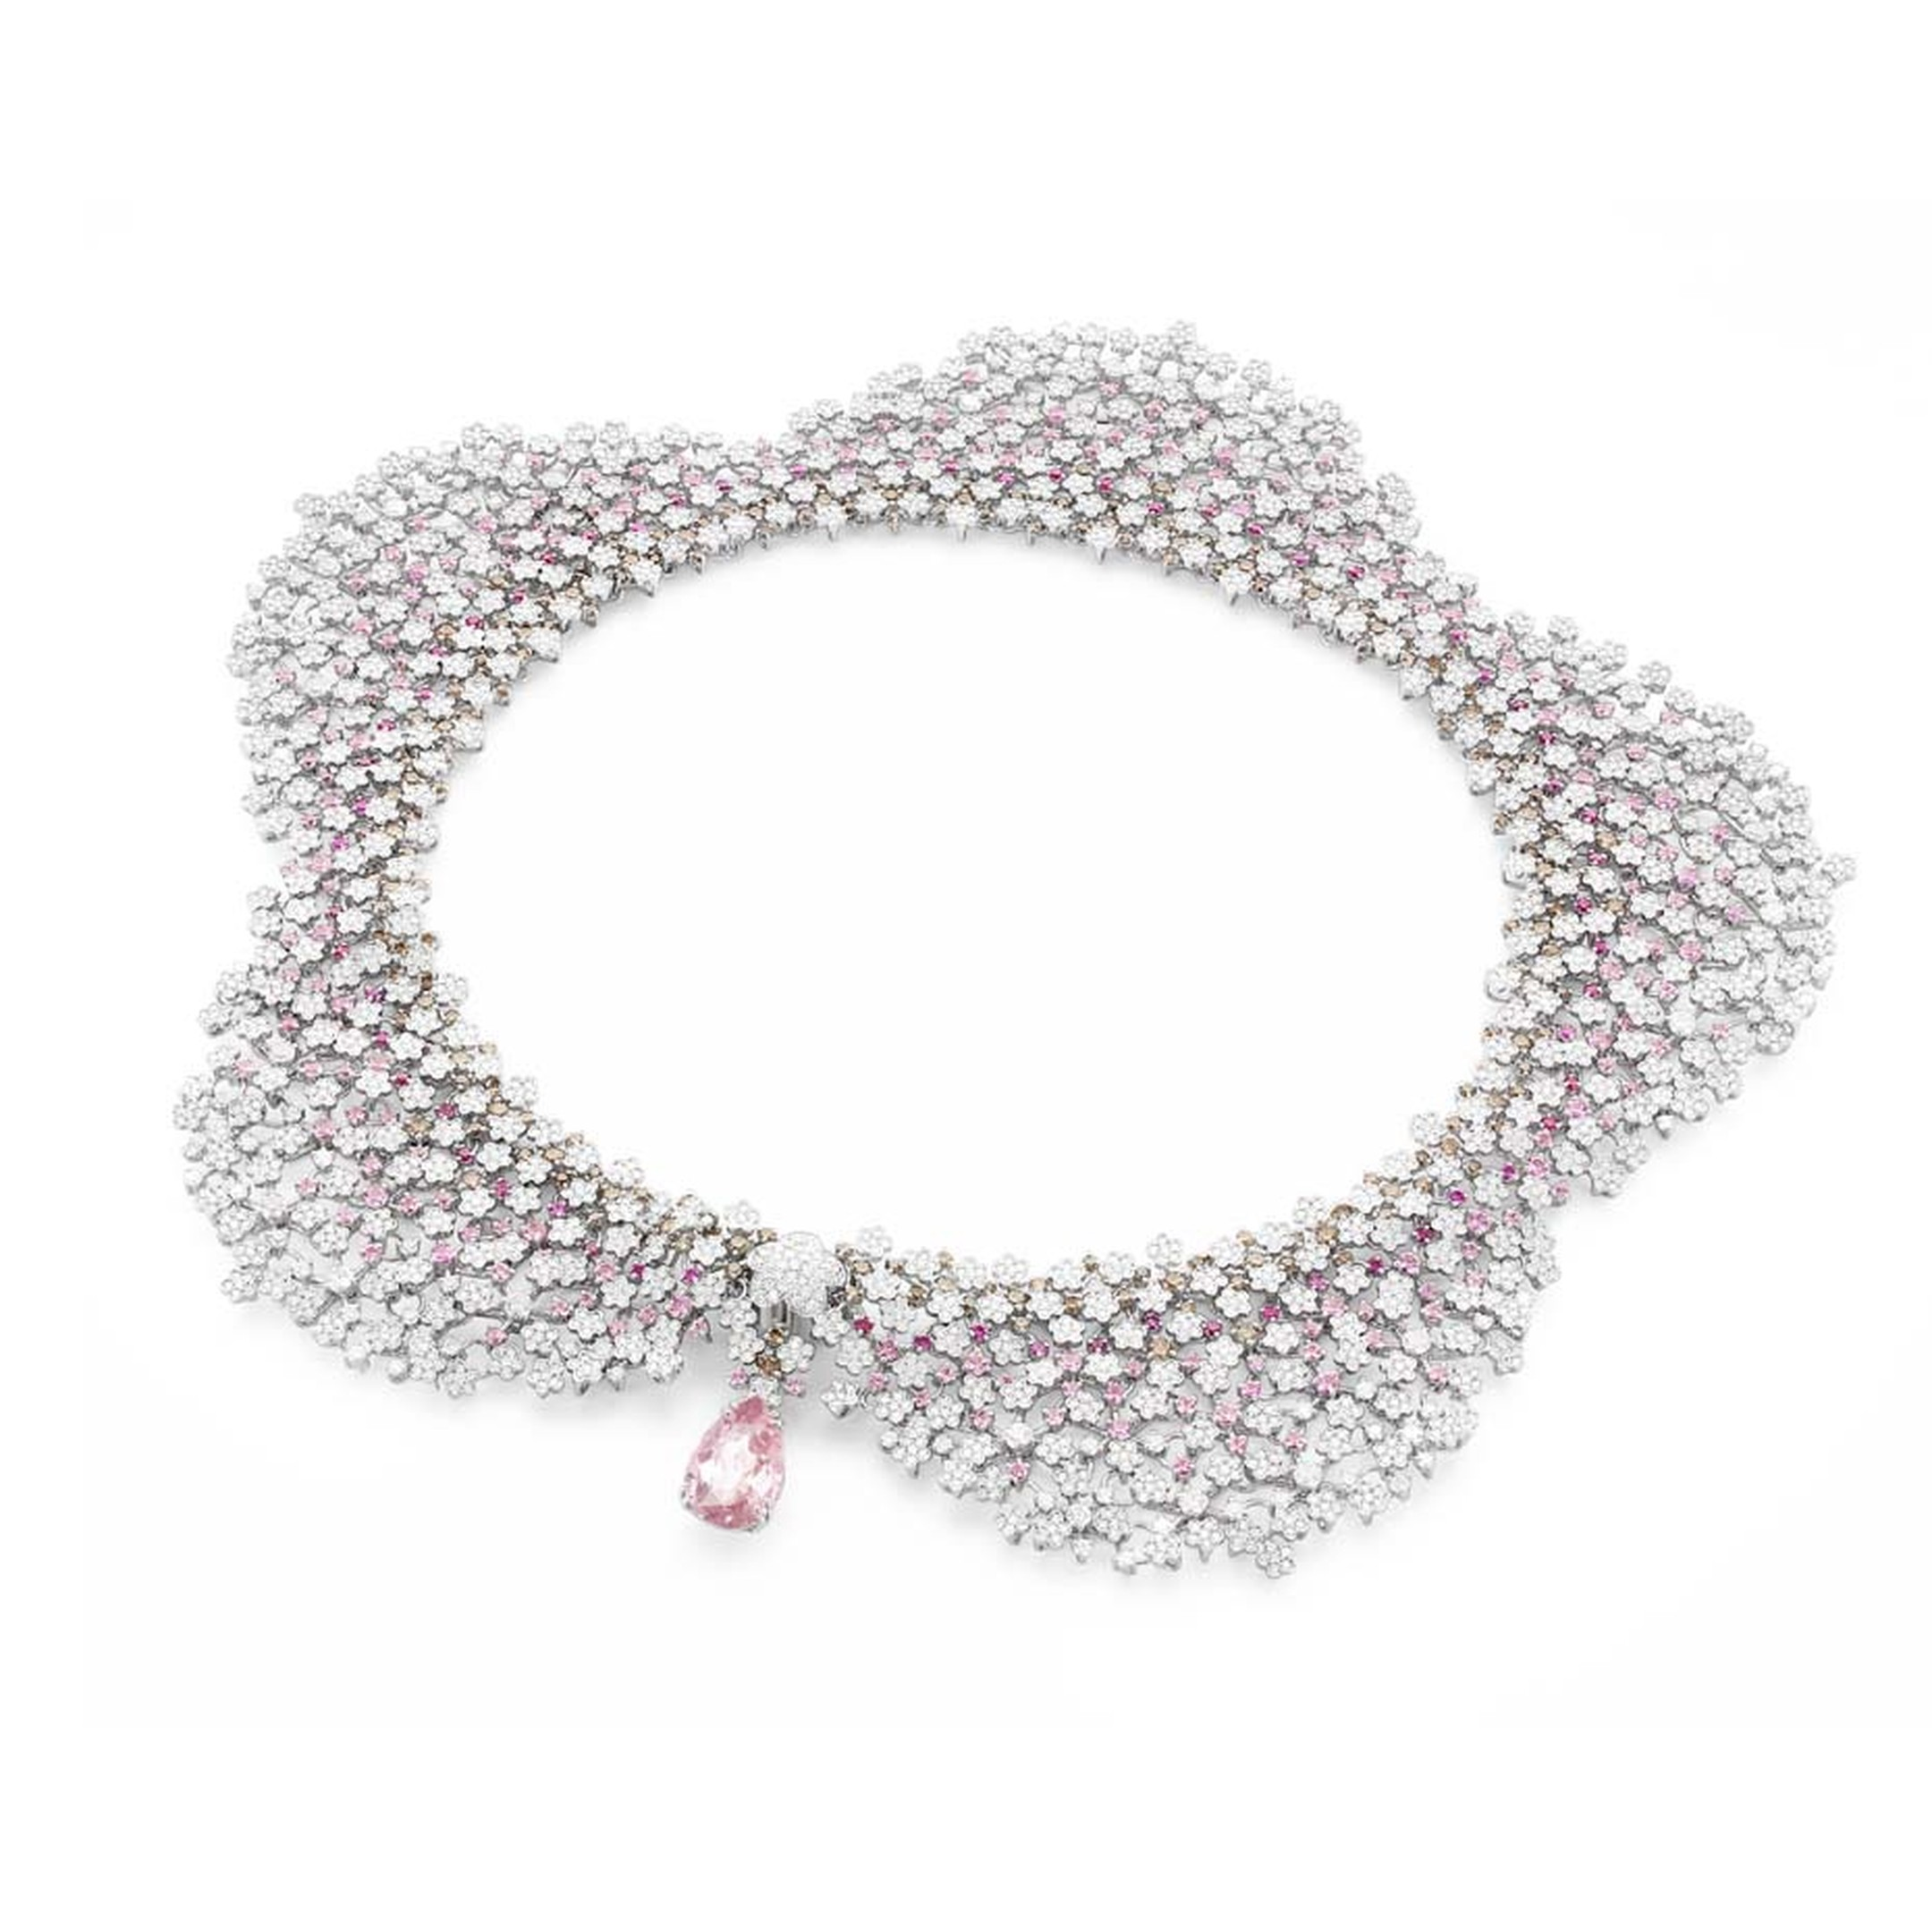 Pasquale Bruni Fiori in Fiore statement necklace, set with 258 pink sapphires that magically blend in among the 3,421 diamonds in white gold.